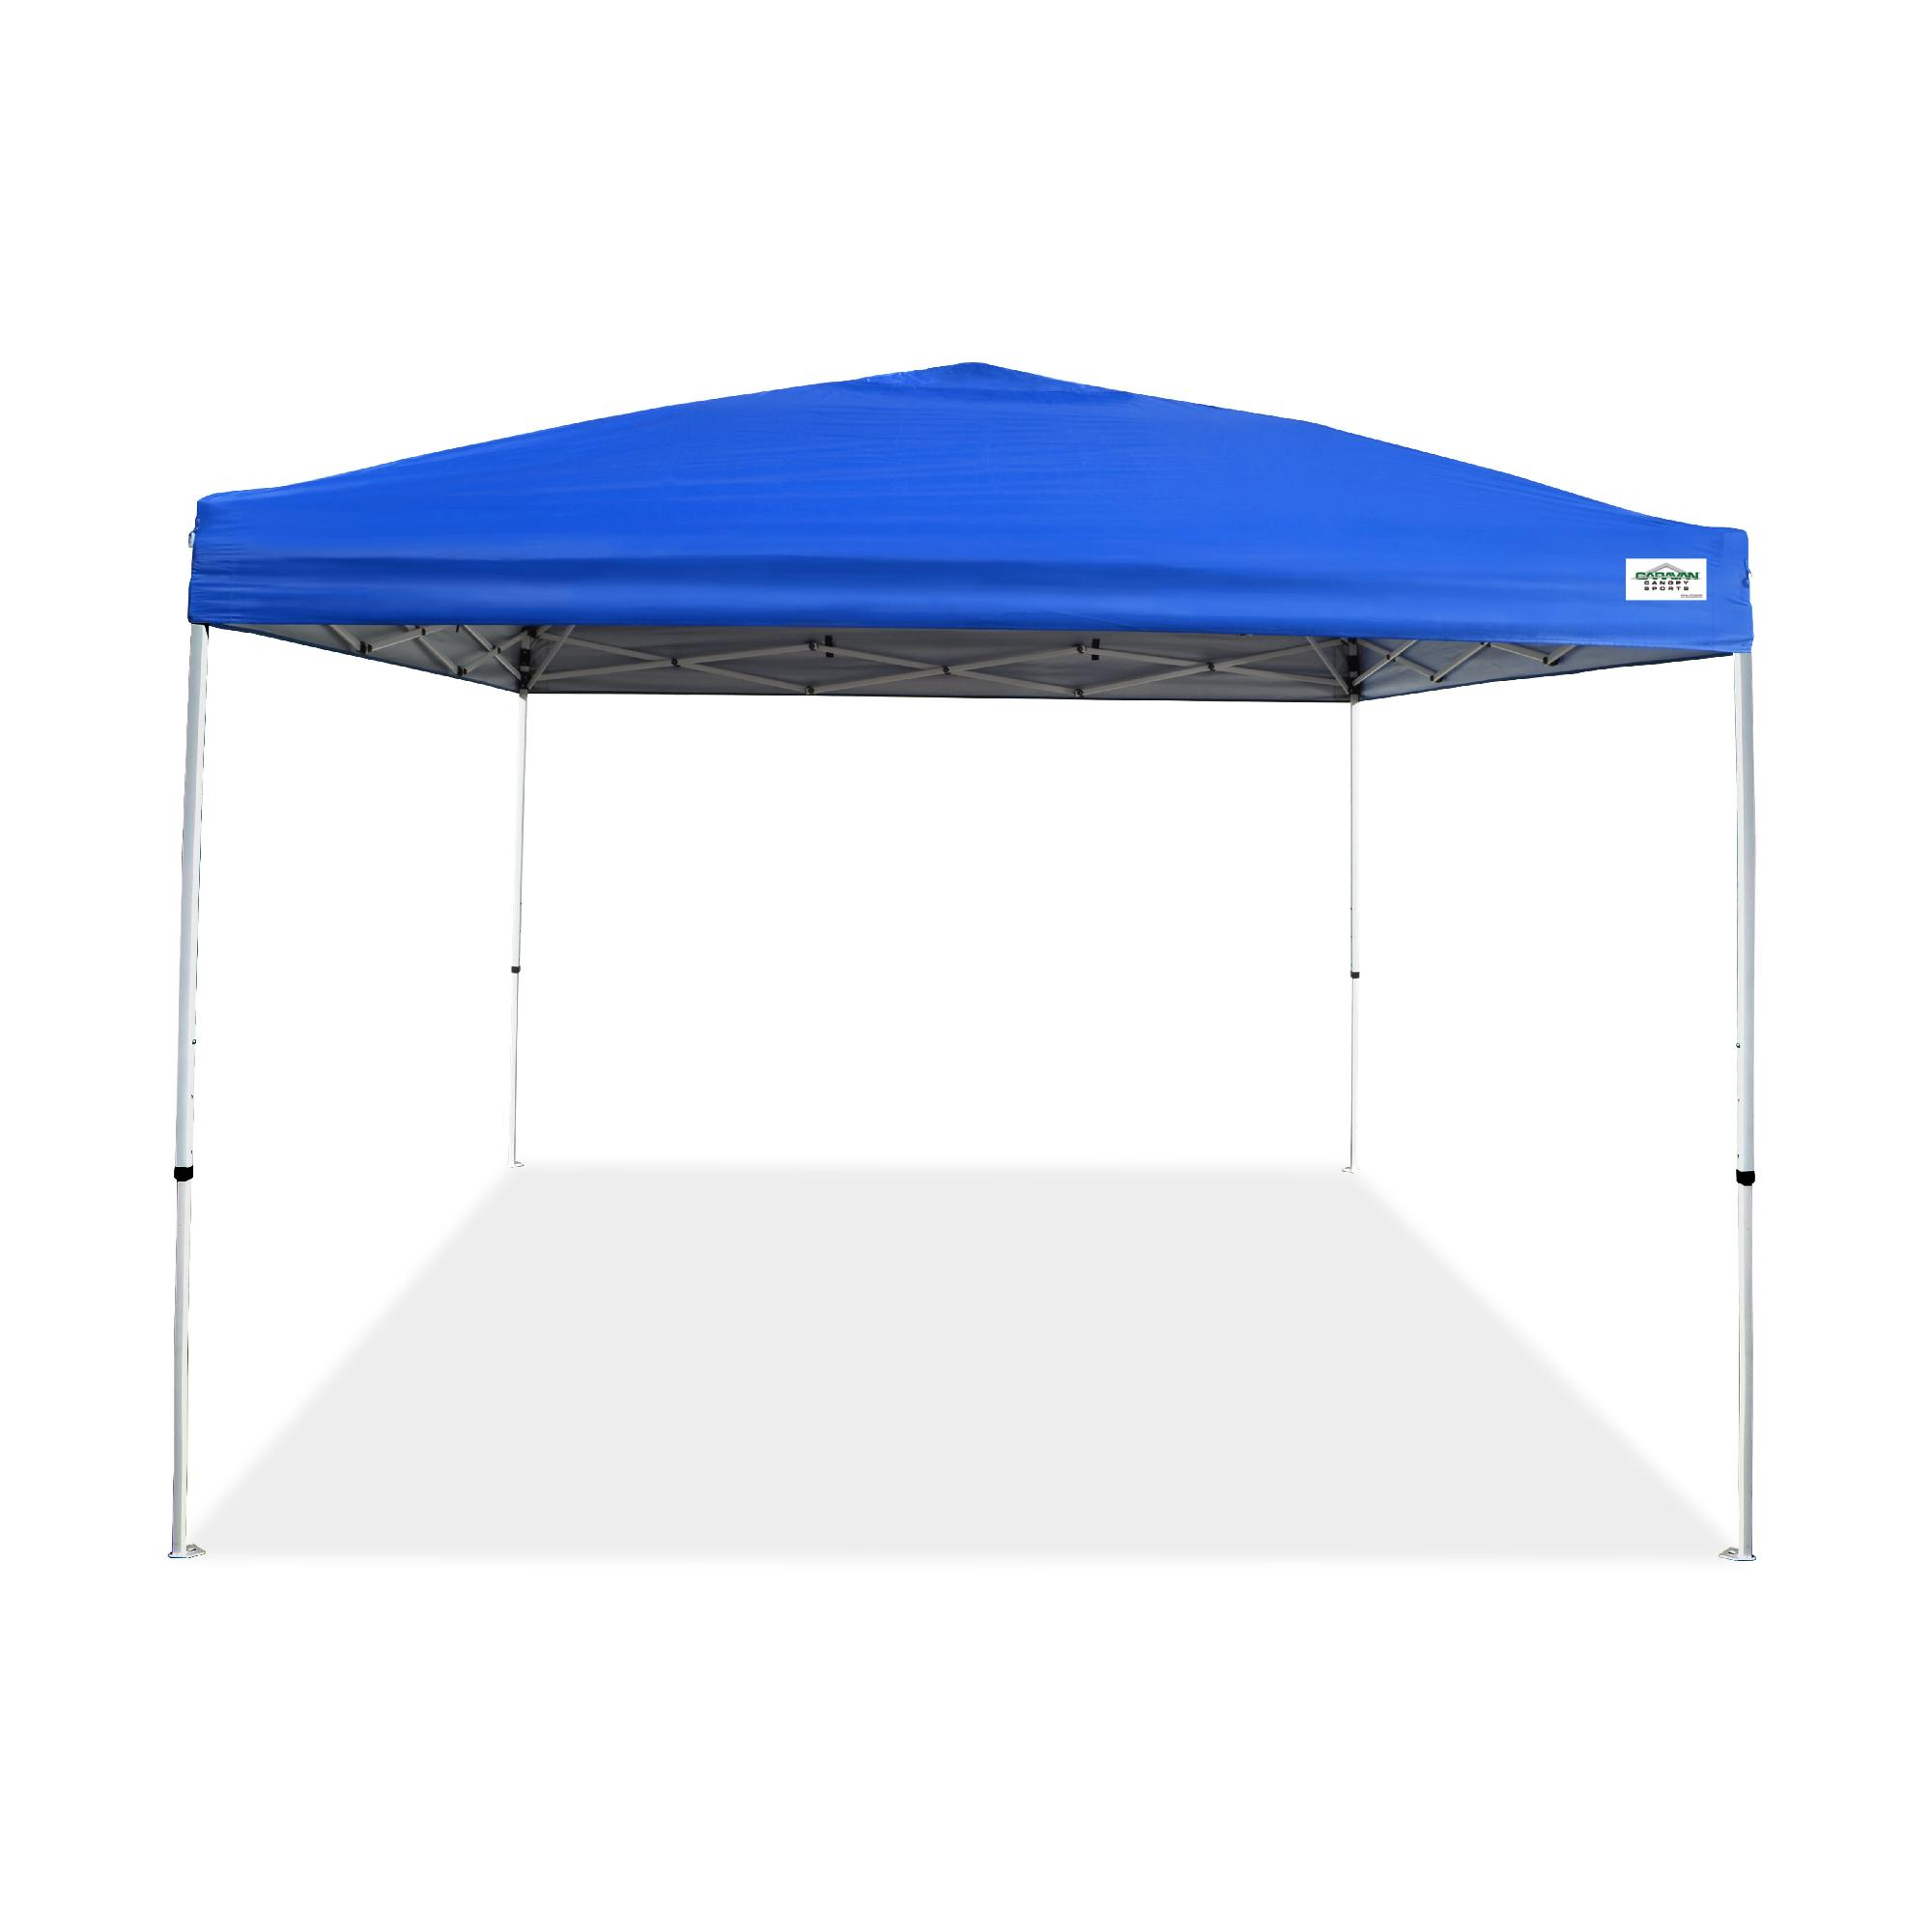 Caravan Canopy 10x10 V Series Pro 2 Instant Canopy Kit Blue